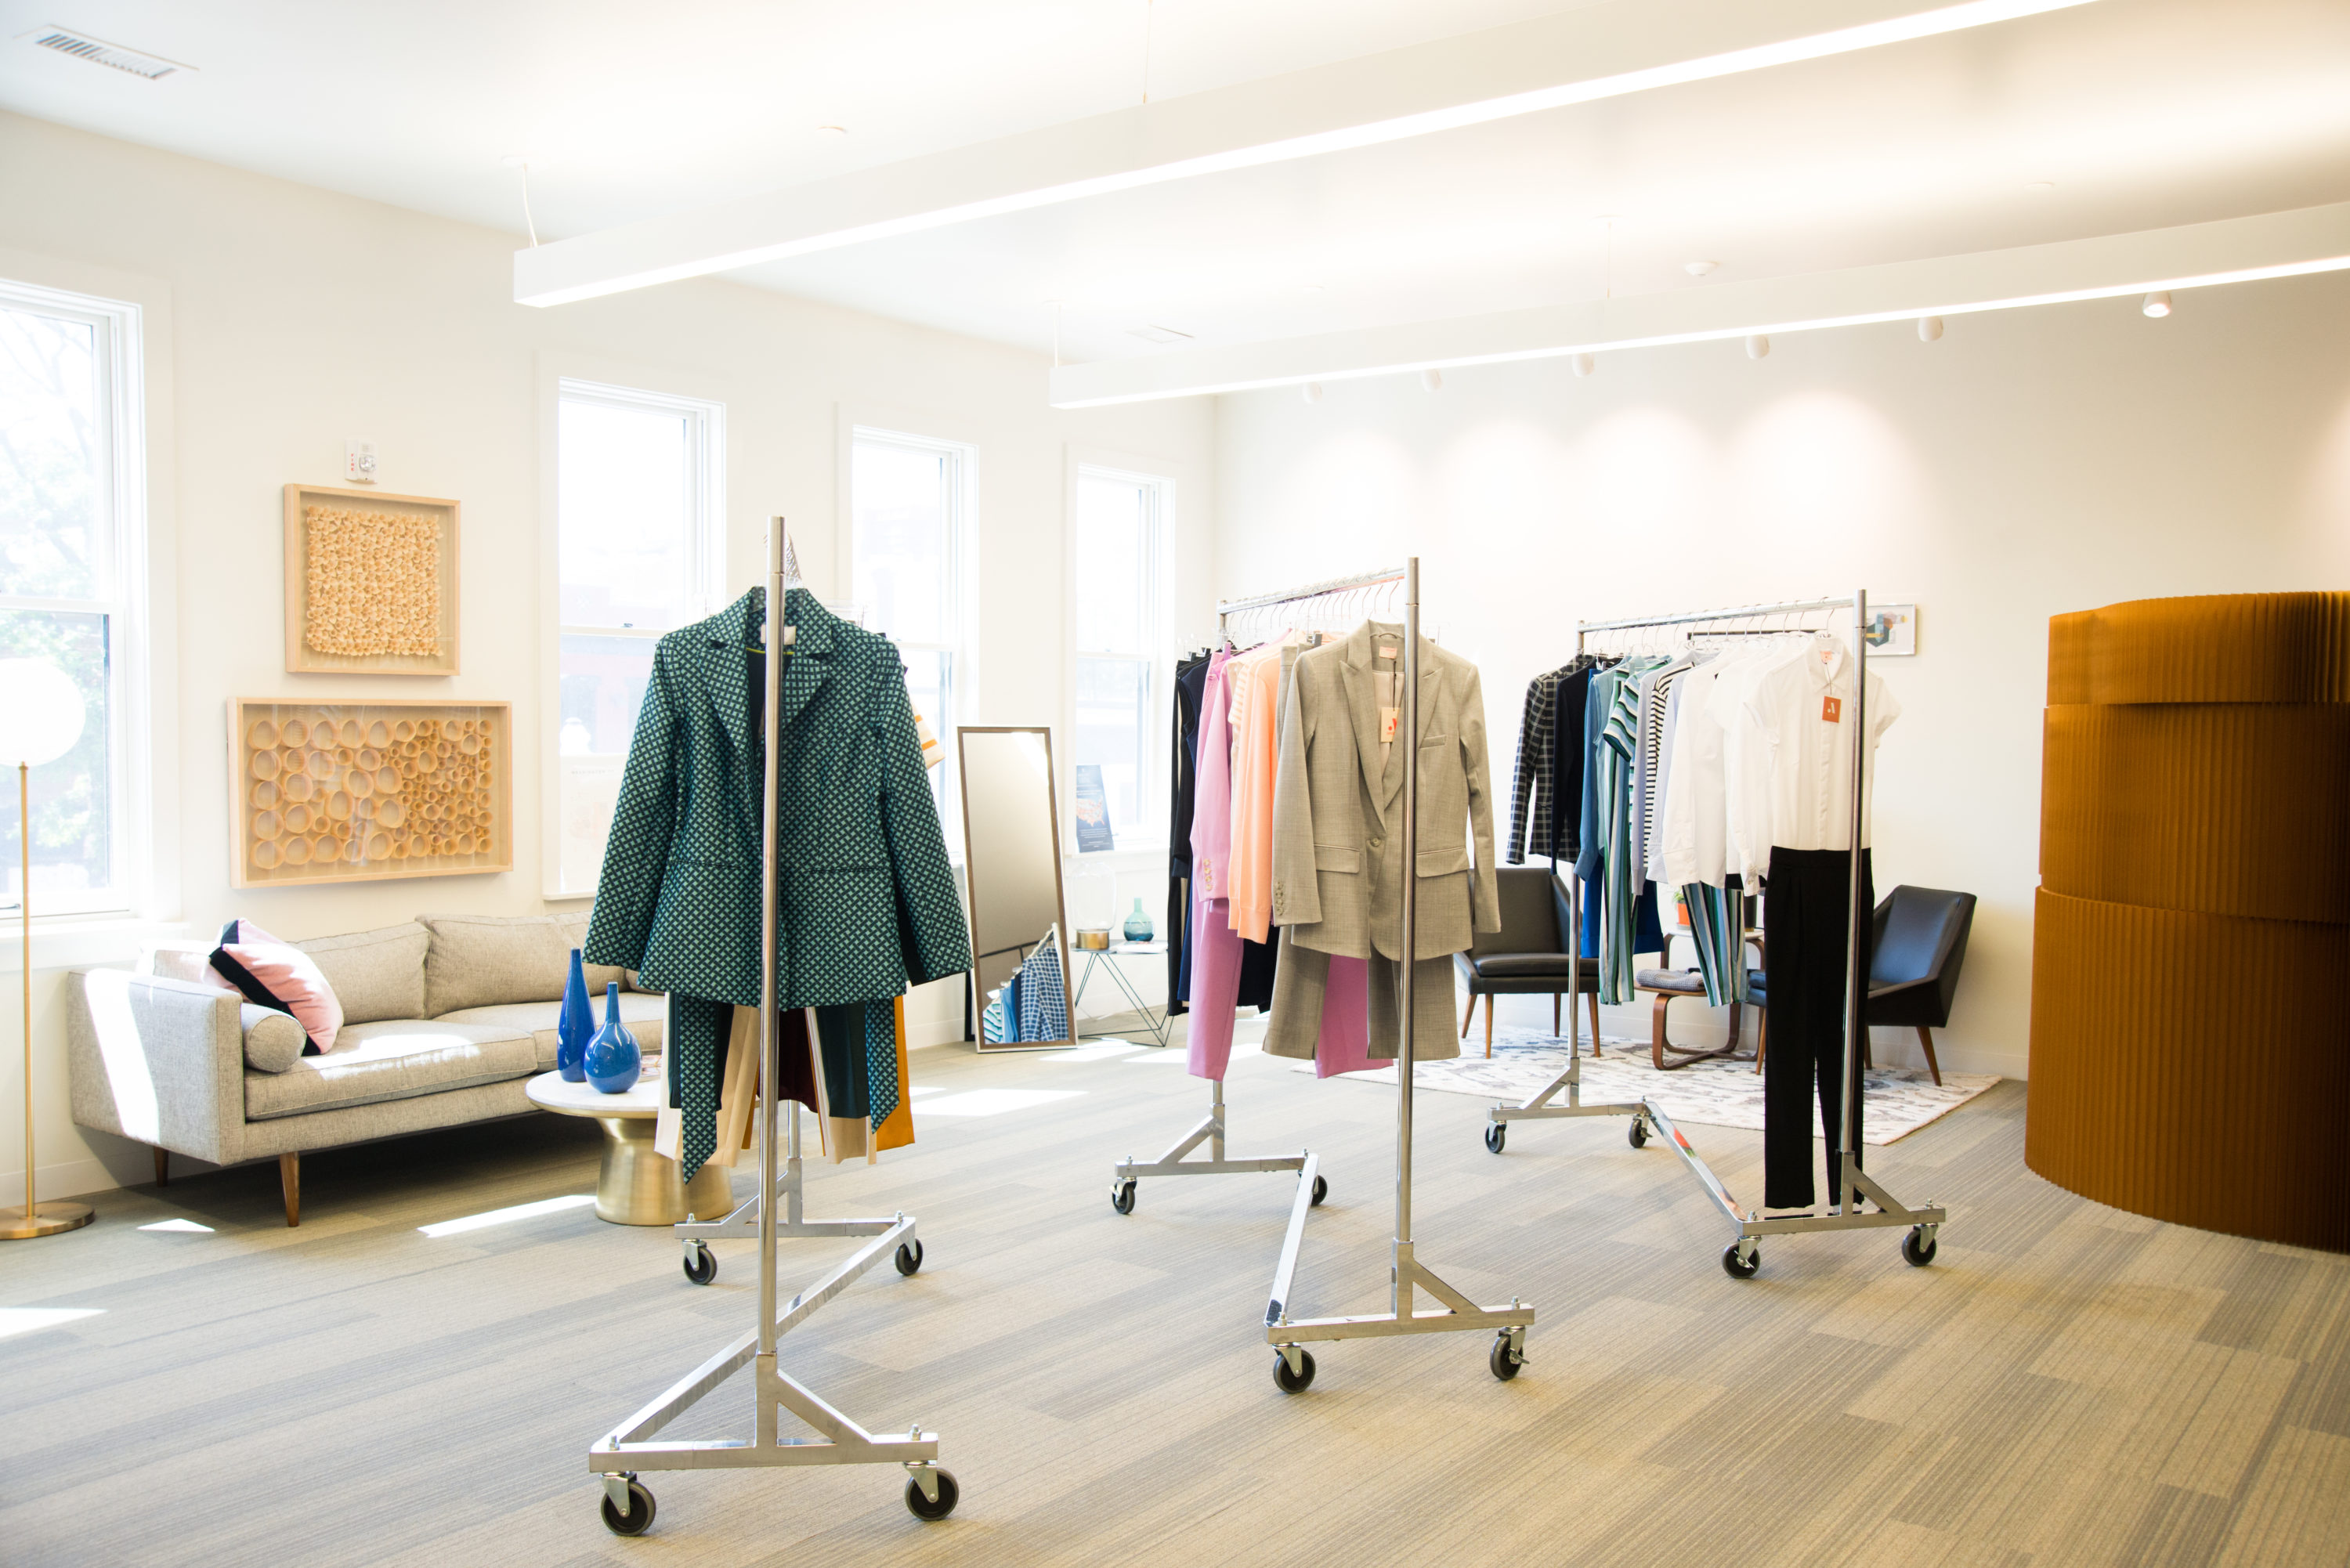 Argent workwear DC pop-up the Shay retail news